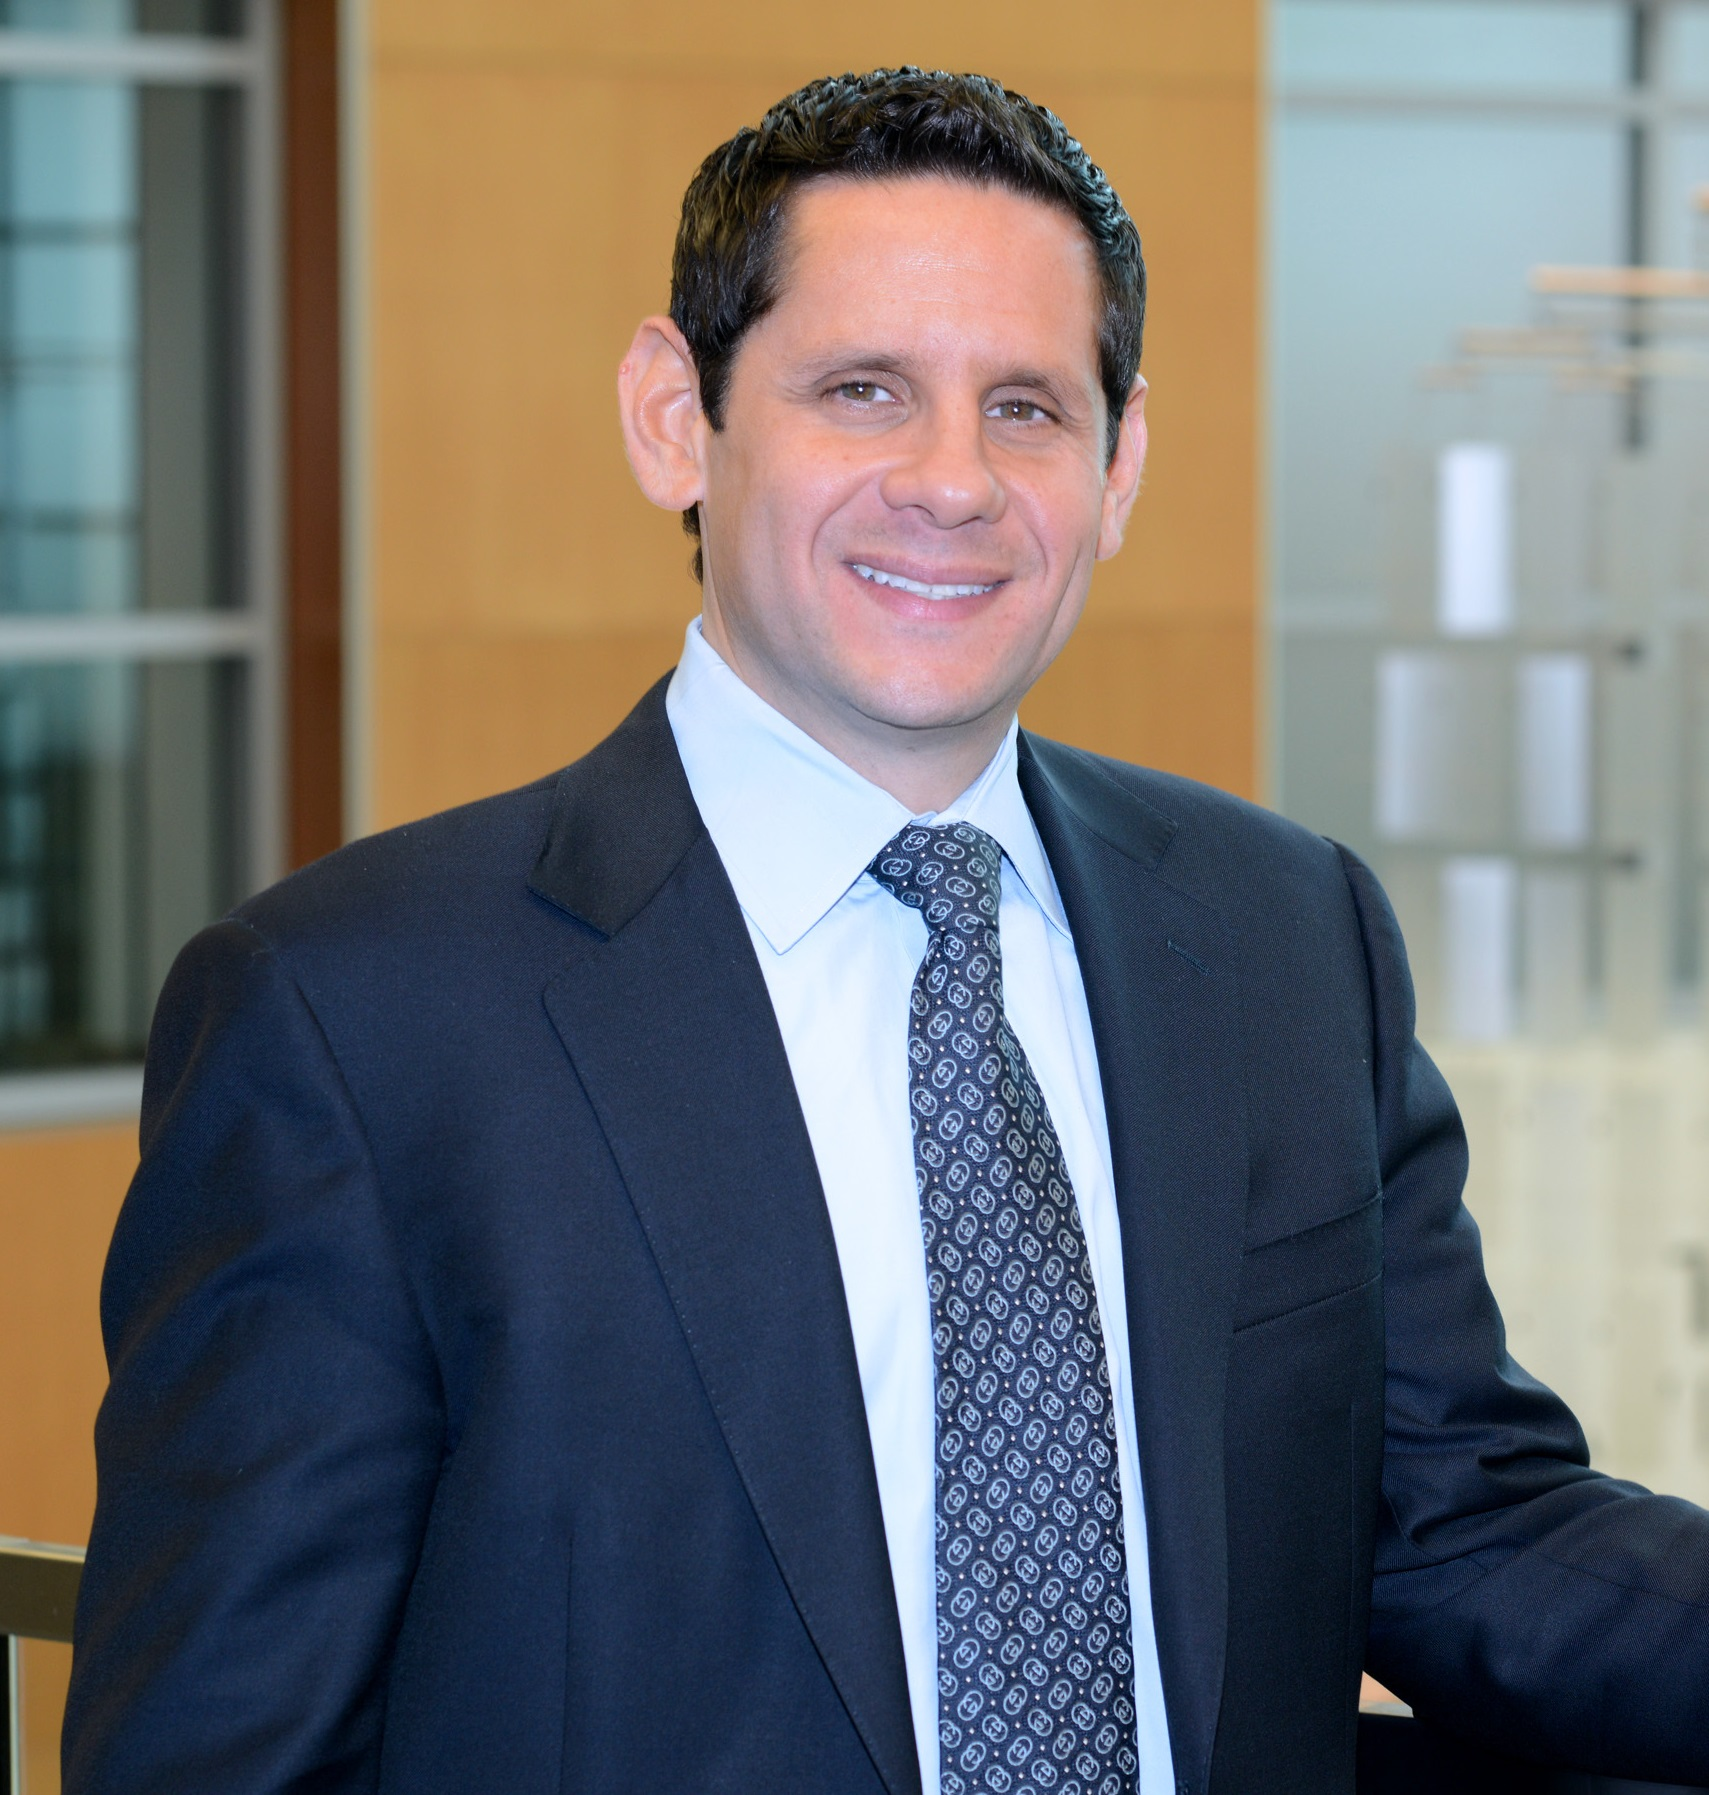 Dr. Kenneth Sable, MD